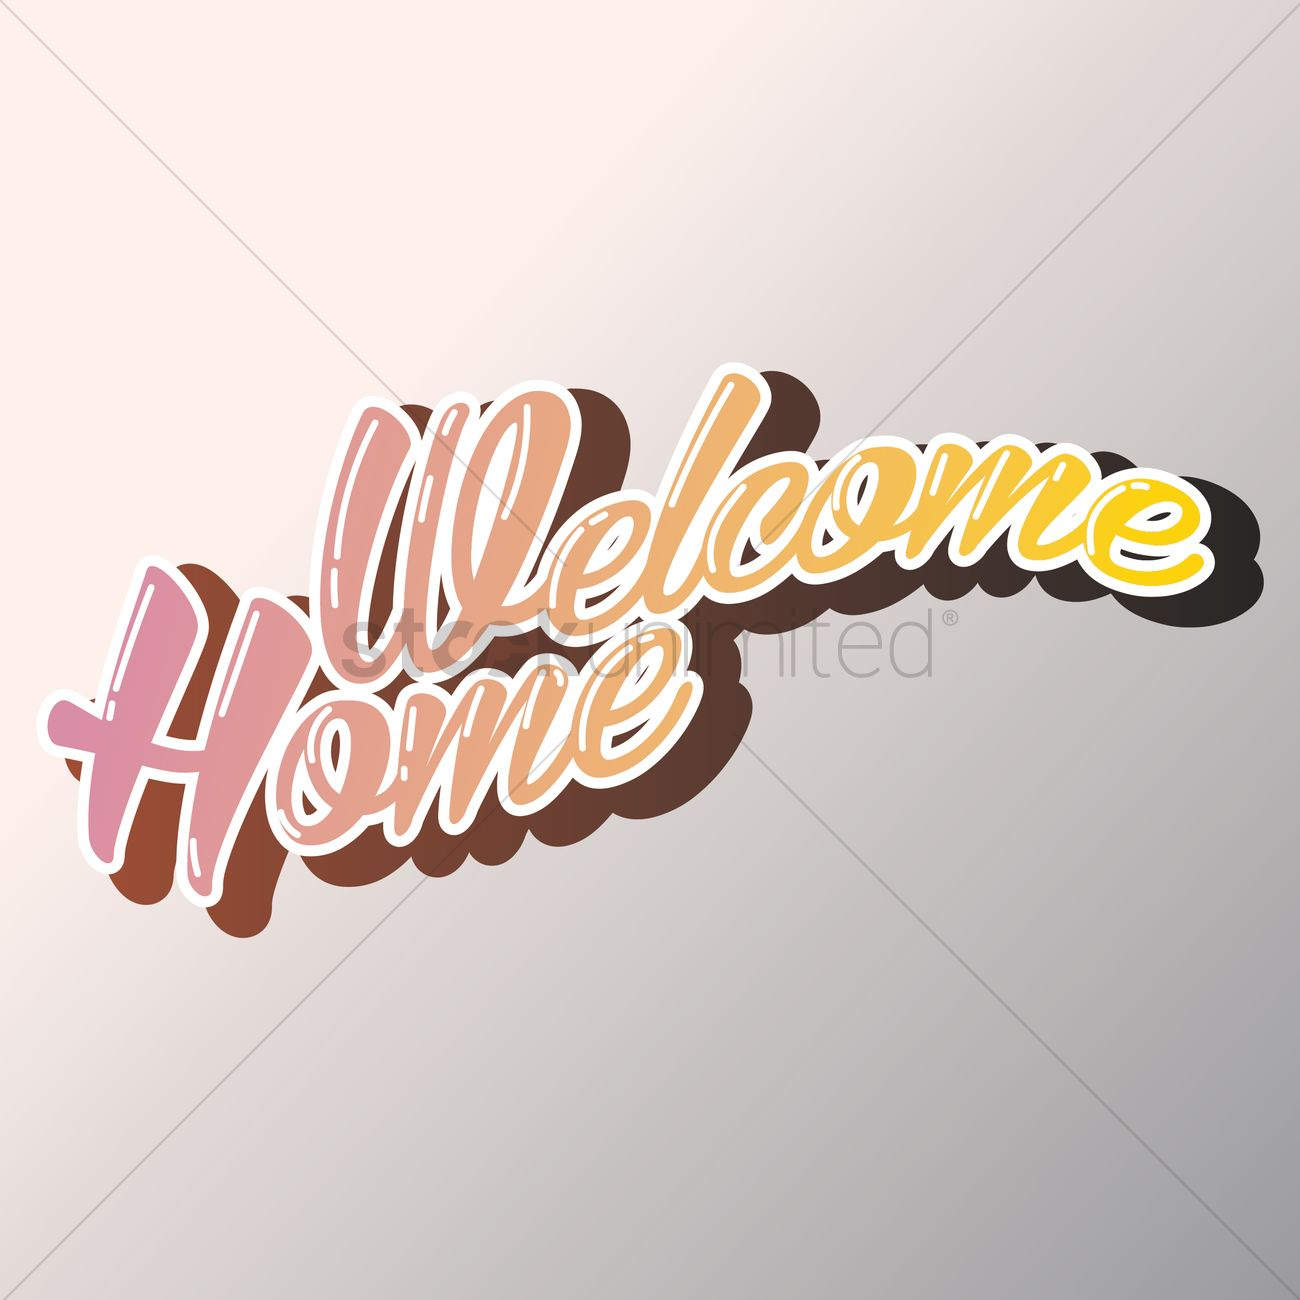 Welcome home greeting vector image 1811271 stockunlimited welcome home greeting vector graphic m4hsunfo